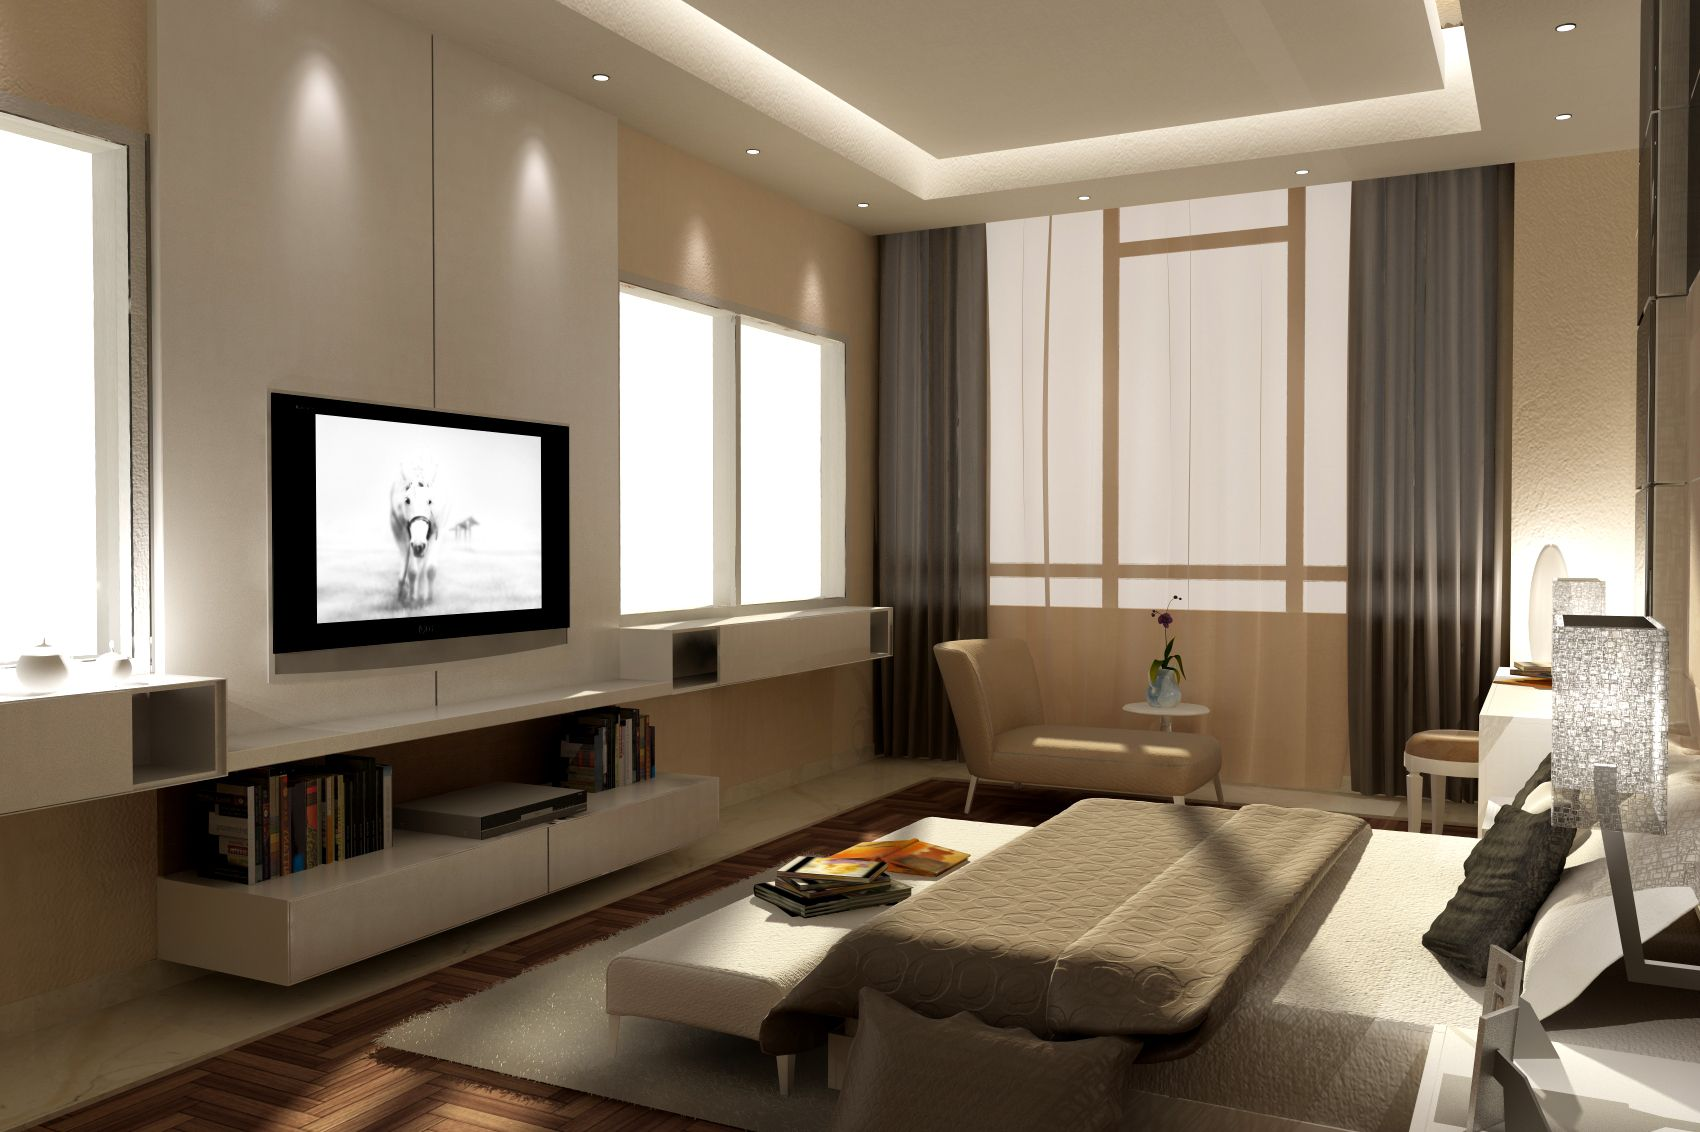 Bedroom modern bedroom interior design 3d max 3d for 3d interior